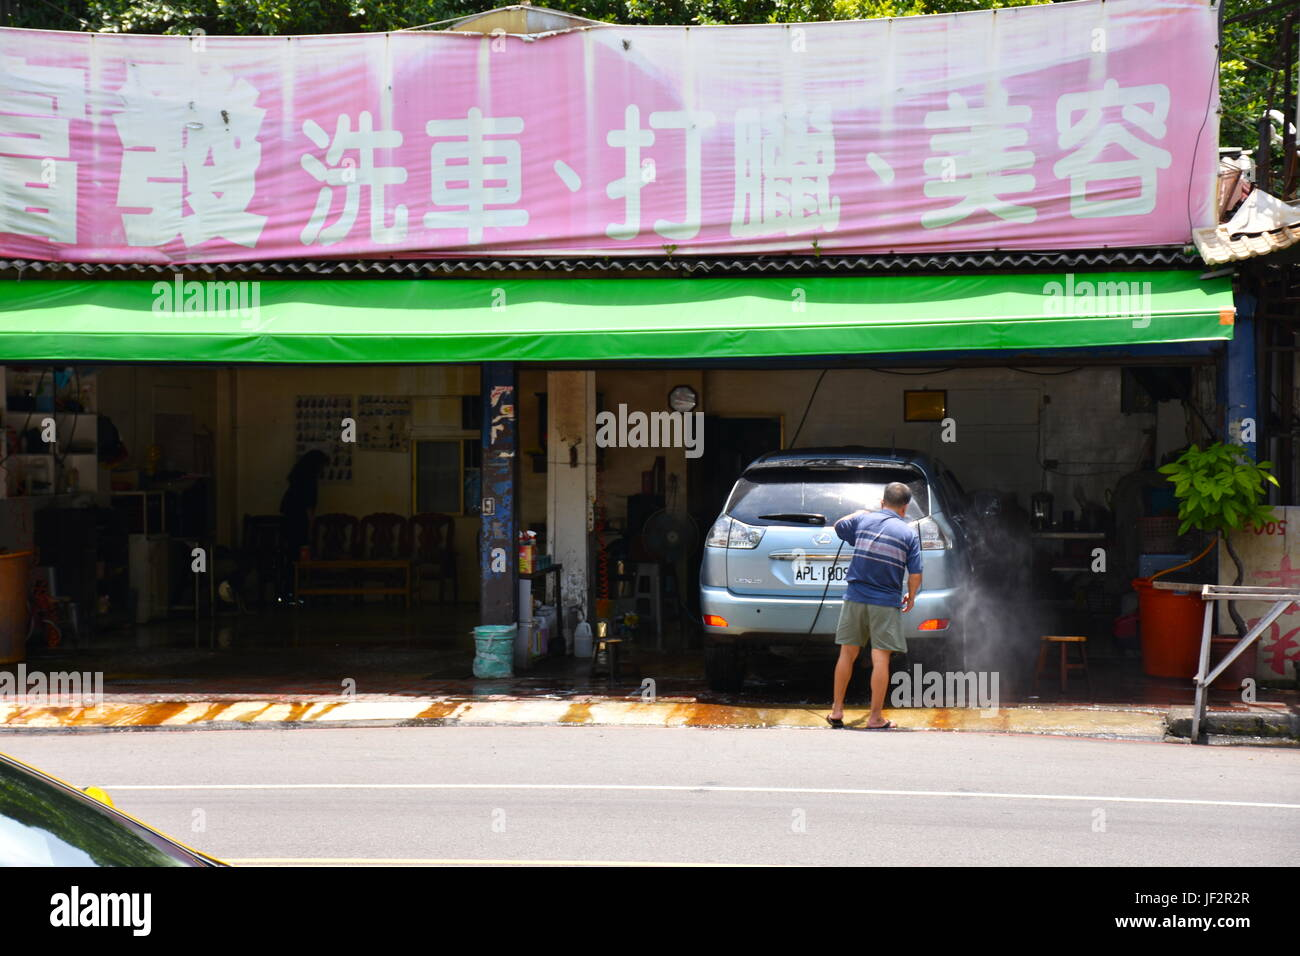 Person washes of mini van during hot summers day in New Taipei City, Taiwan working in their own business. Stock Photo